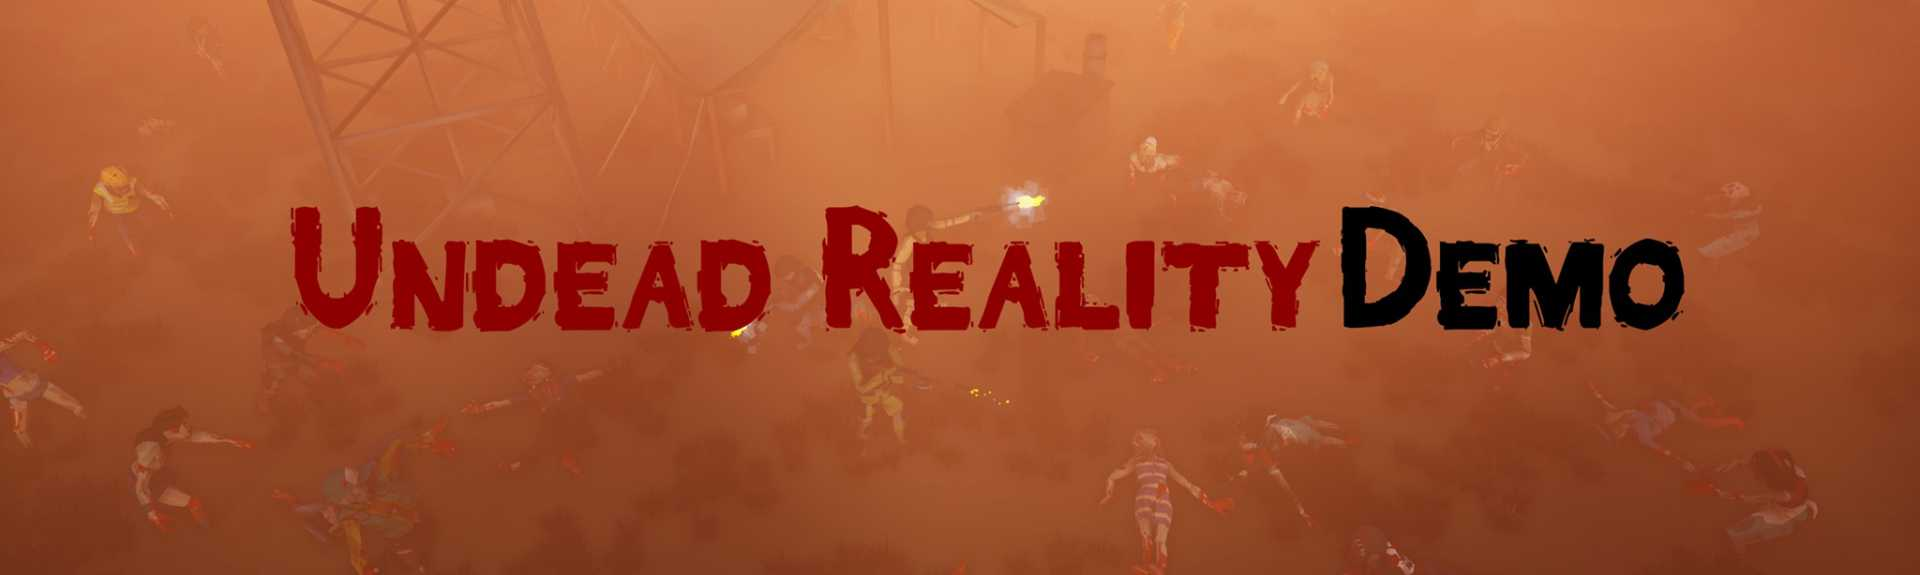 Undead Reality Demo